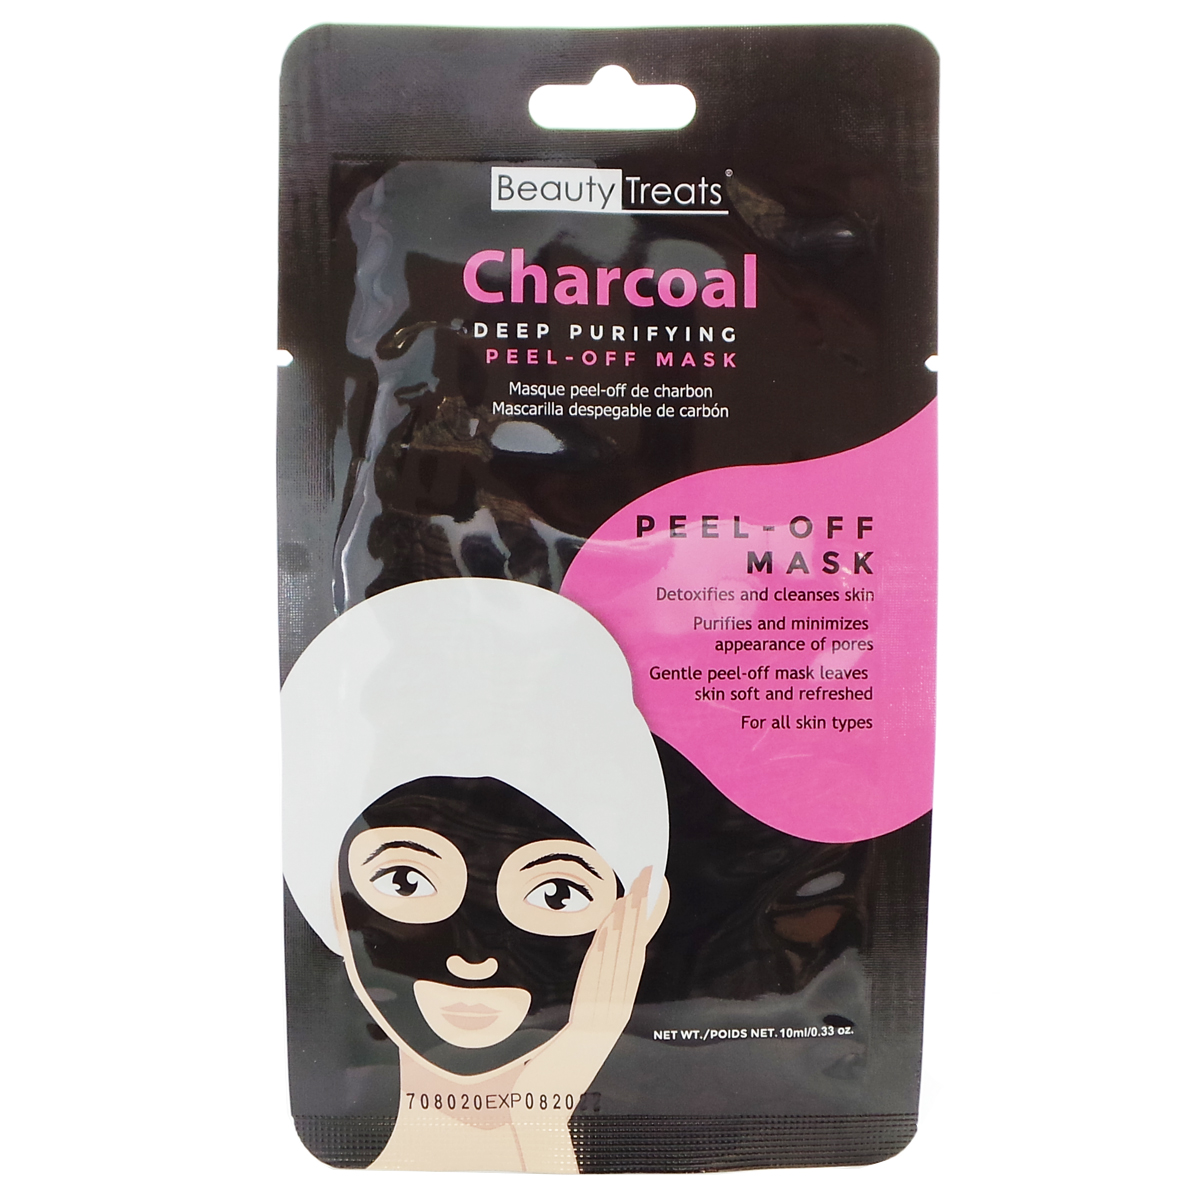 (6 Paquets) BEAUTY TREATS Deep Purifying Peel-Off Charcoal Mask